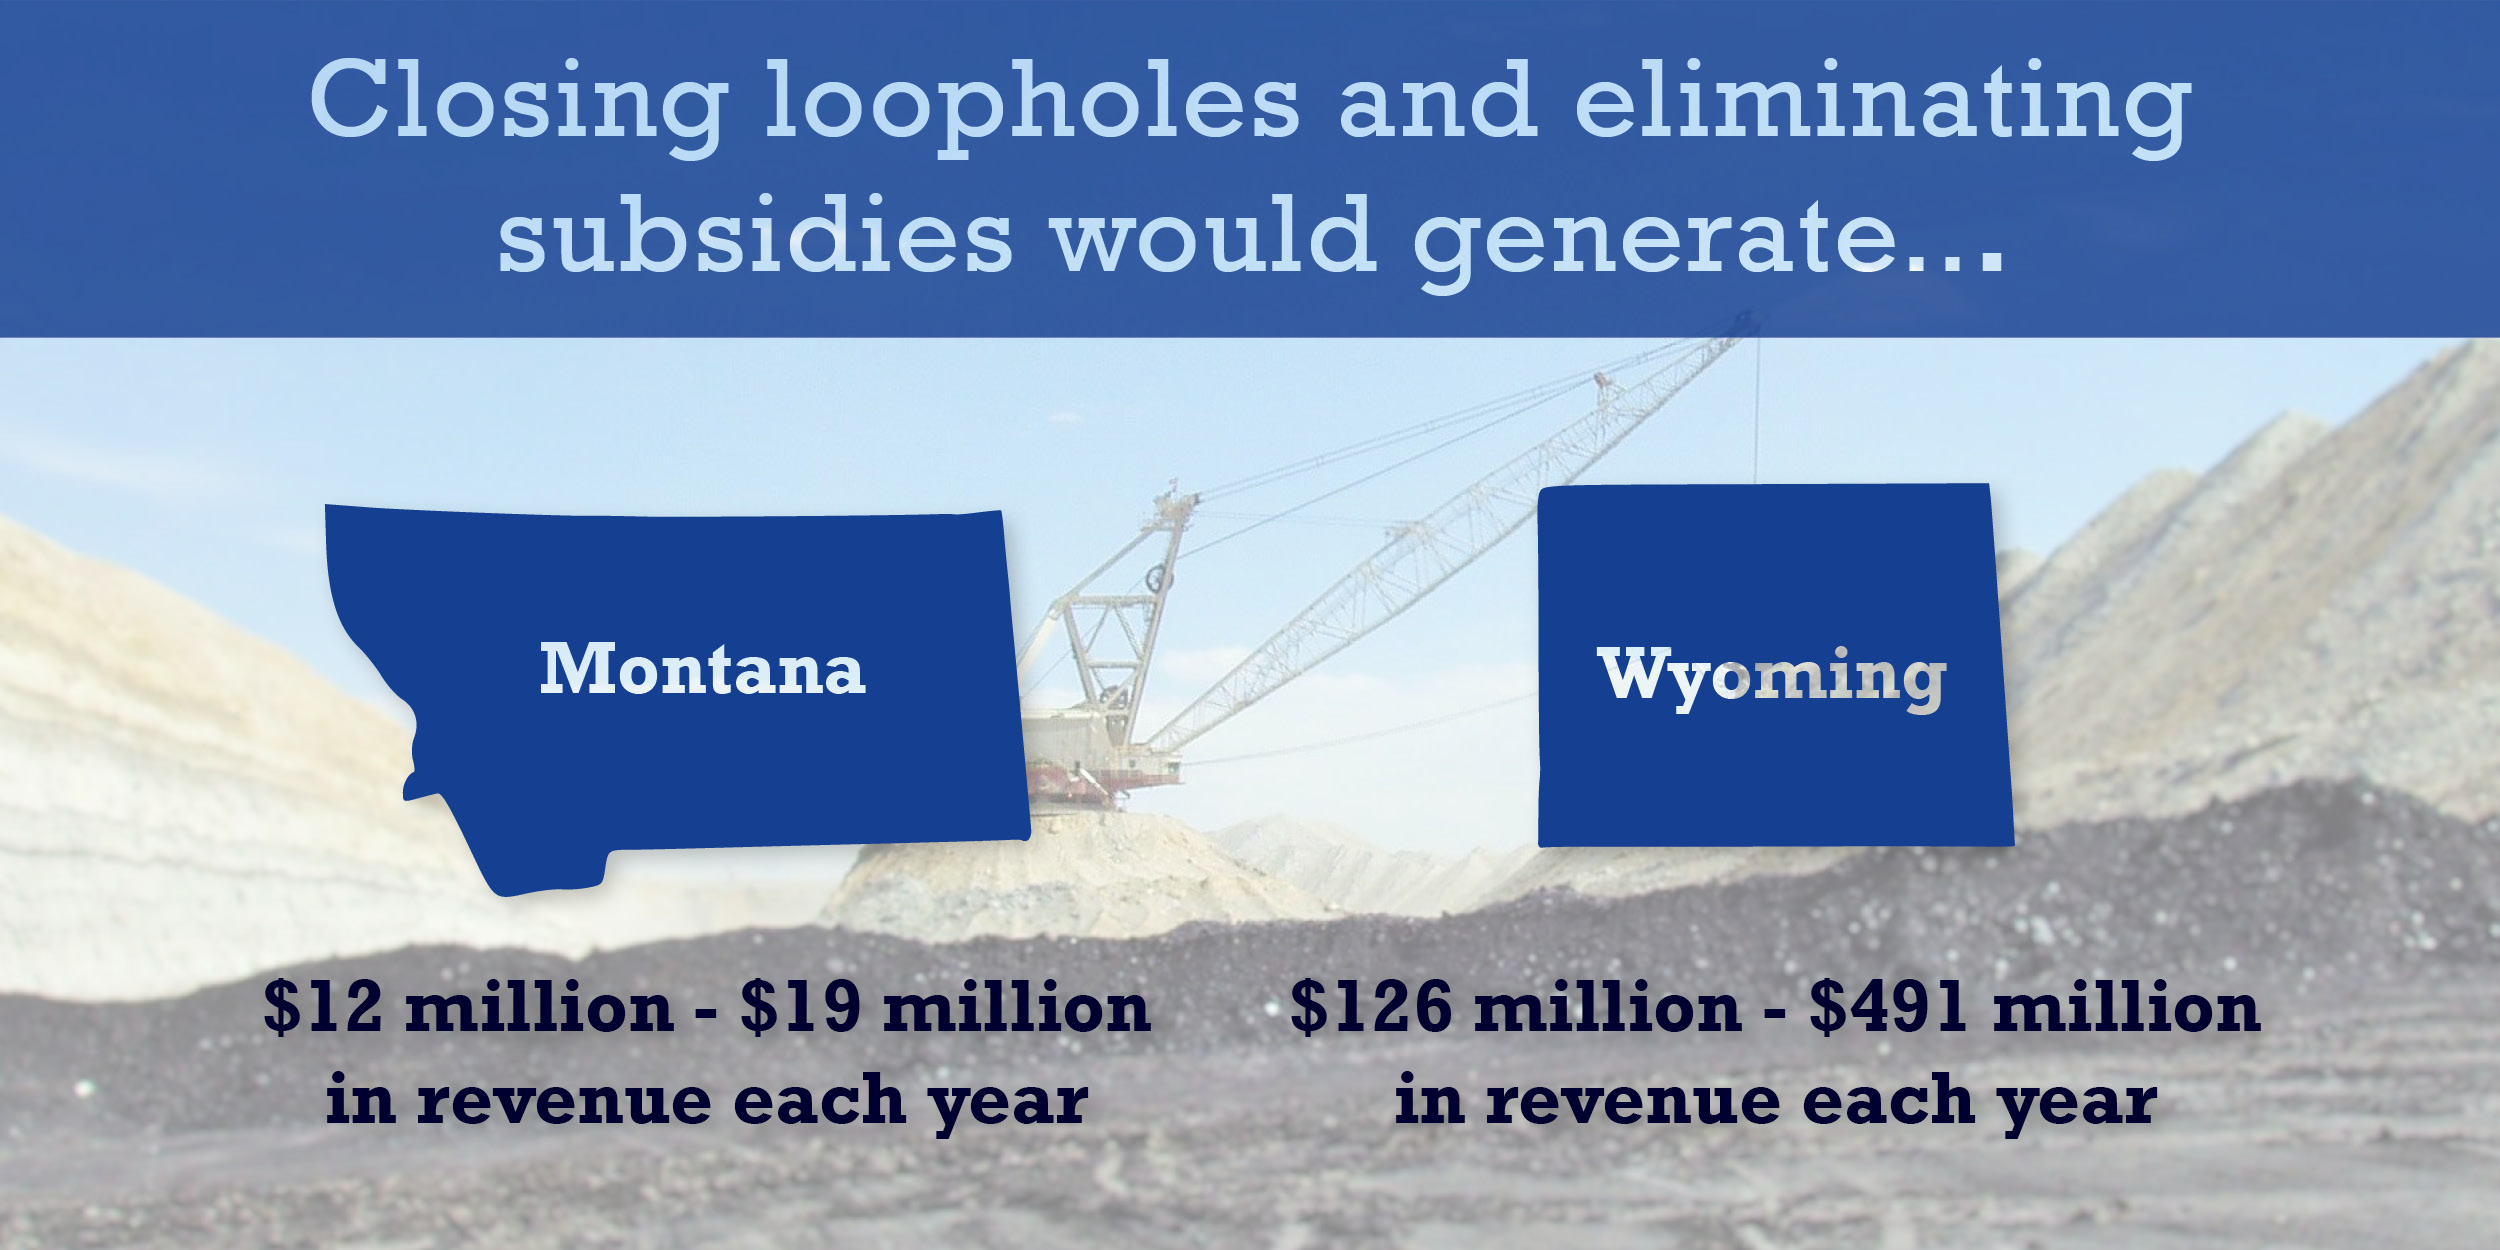 Closing loopholes and eliminating subsidies would generate...